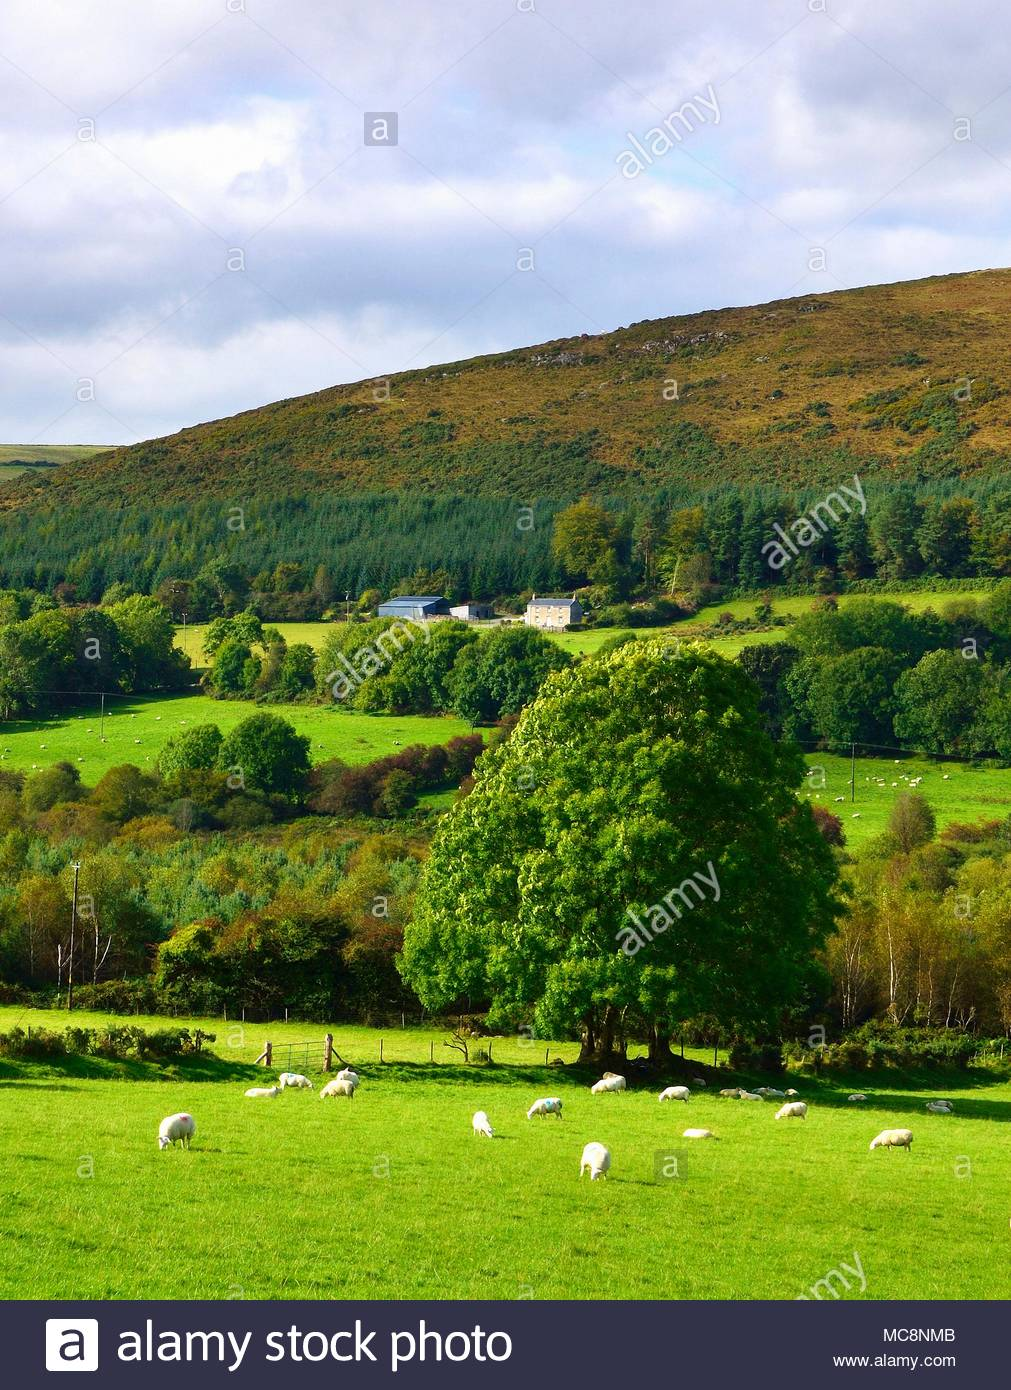 A Late Summer View Of The Lush Landscape Of County Wicklow